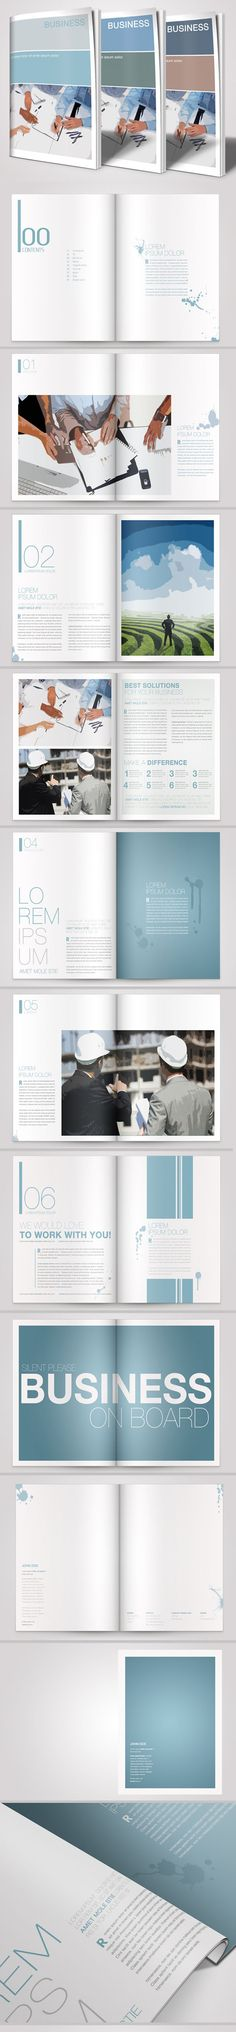 Graphic Design Layout. BLUSH Magazine. A4 Business Brochure Vol. 01 by Danijel Mokic www.LIVETHEGLAMOUROUSLIFE.COM